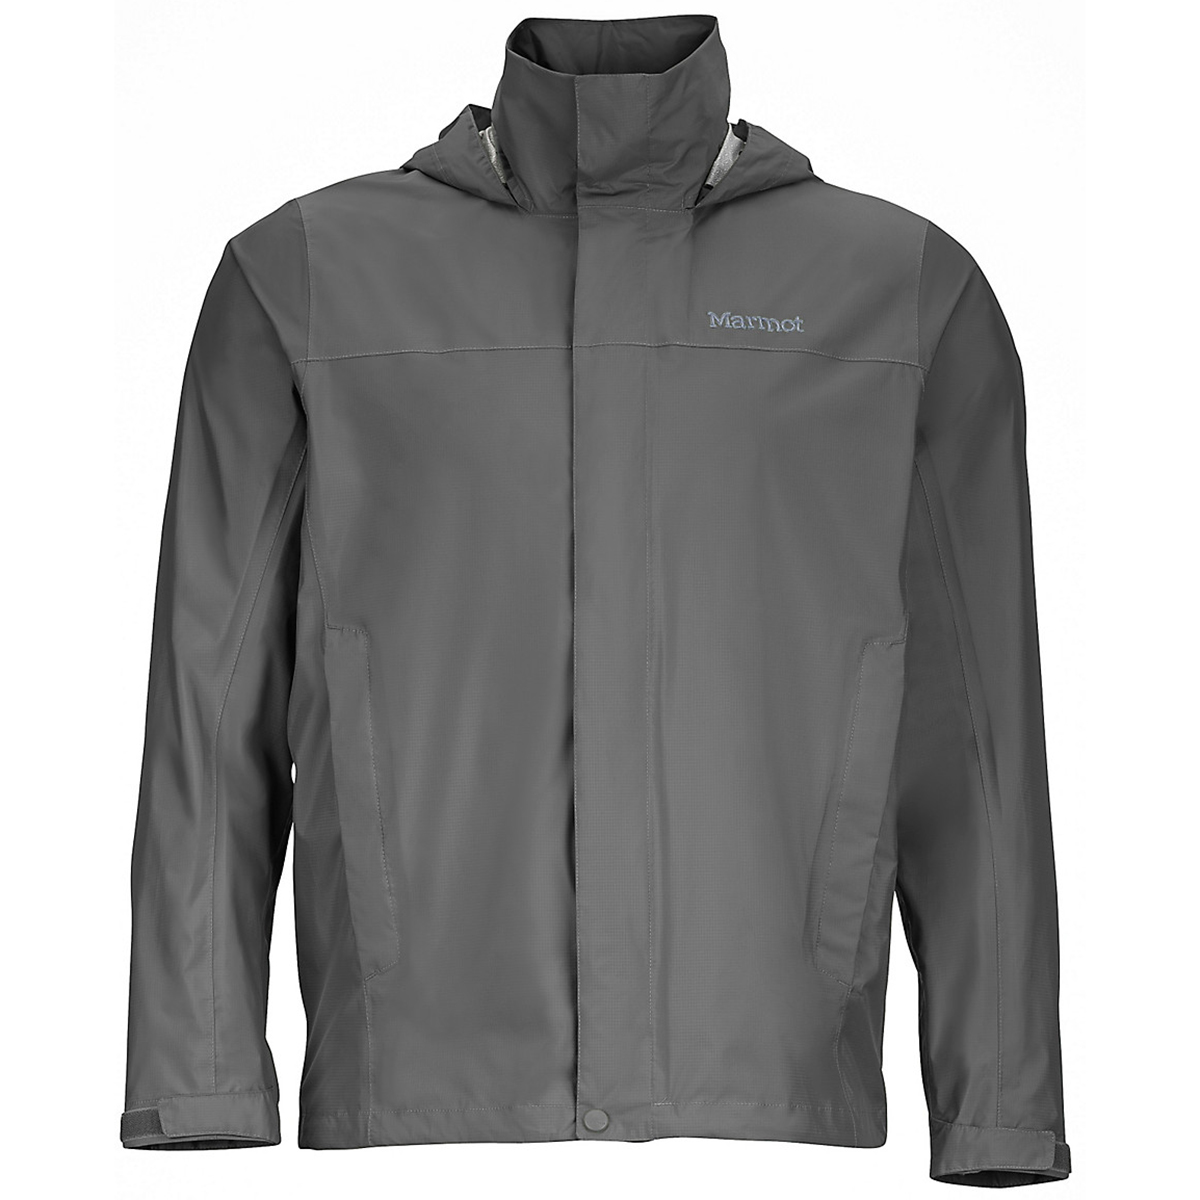 Marmot Men's Precip Jacket - Black, M